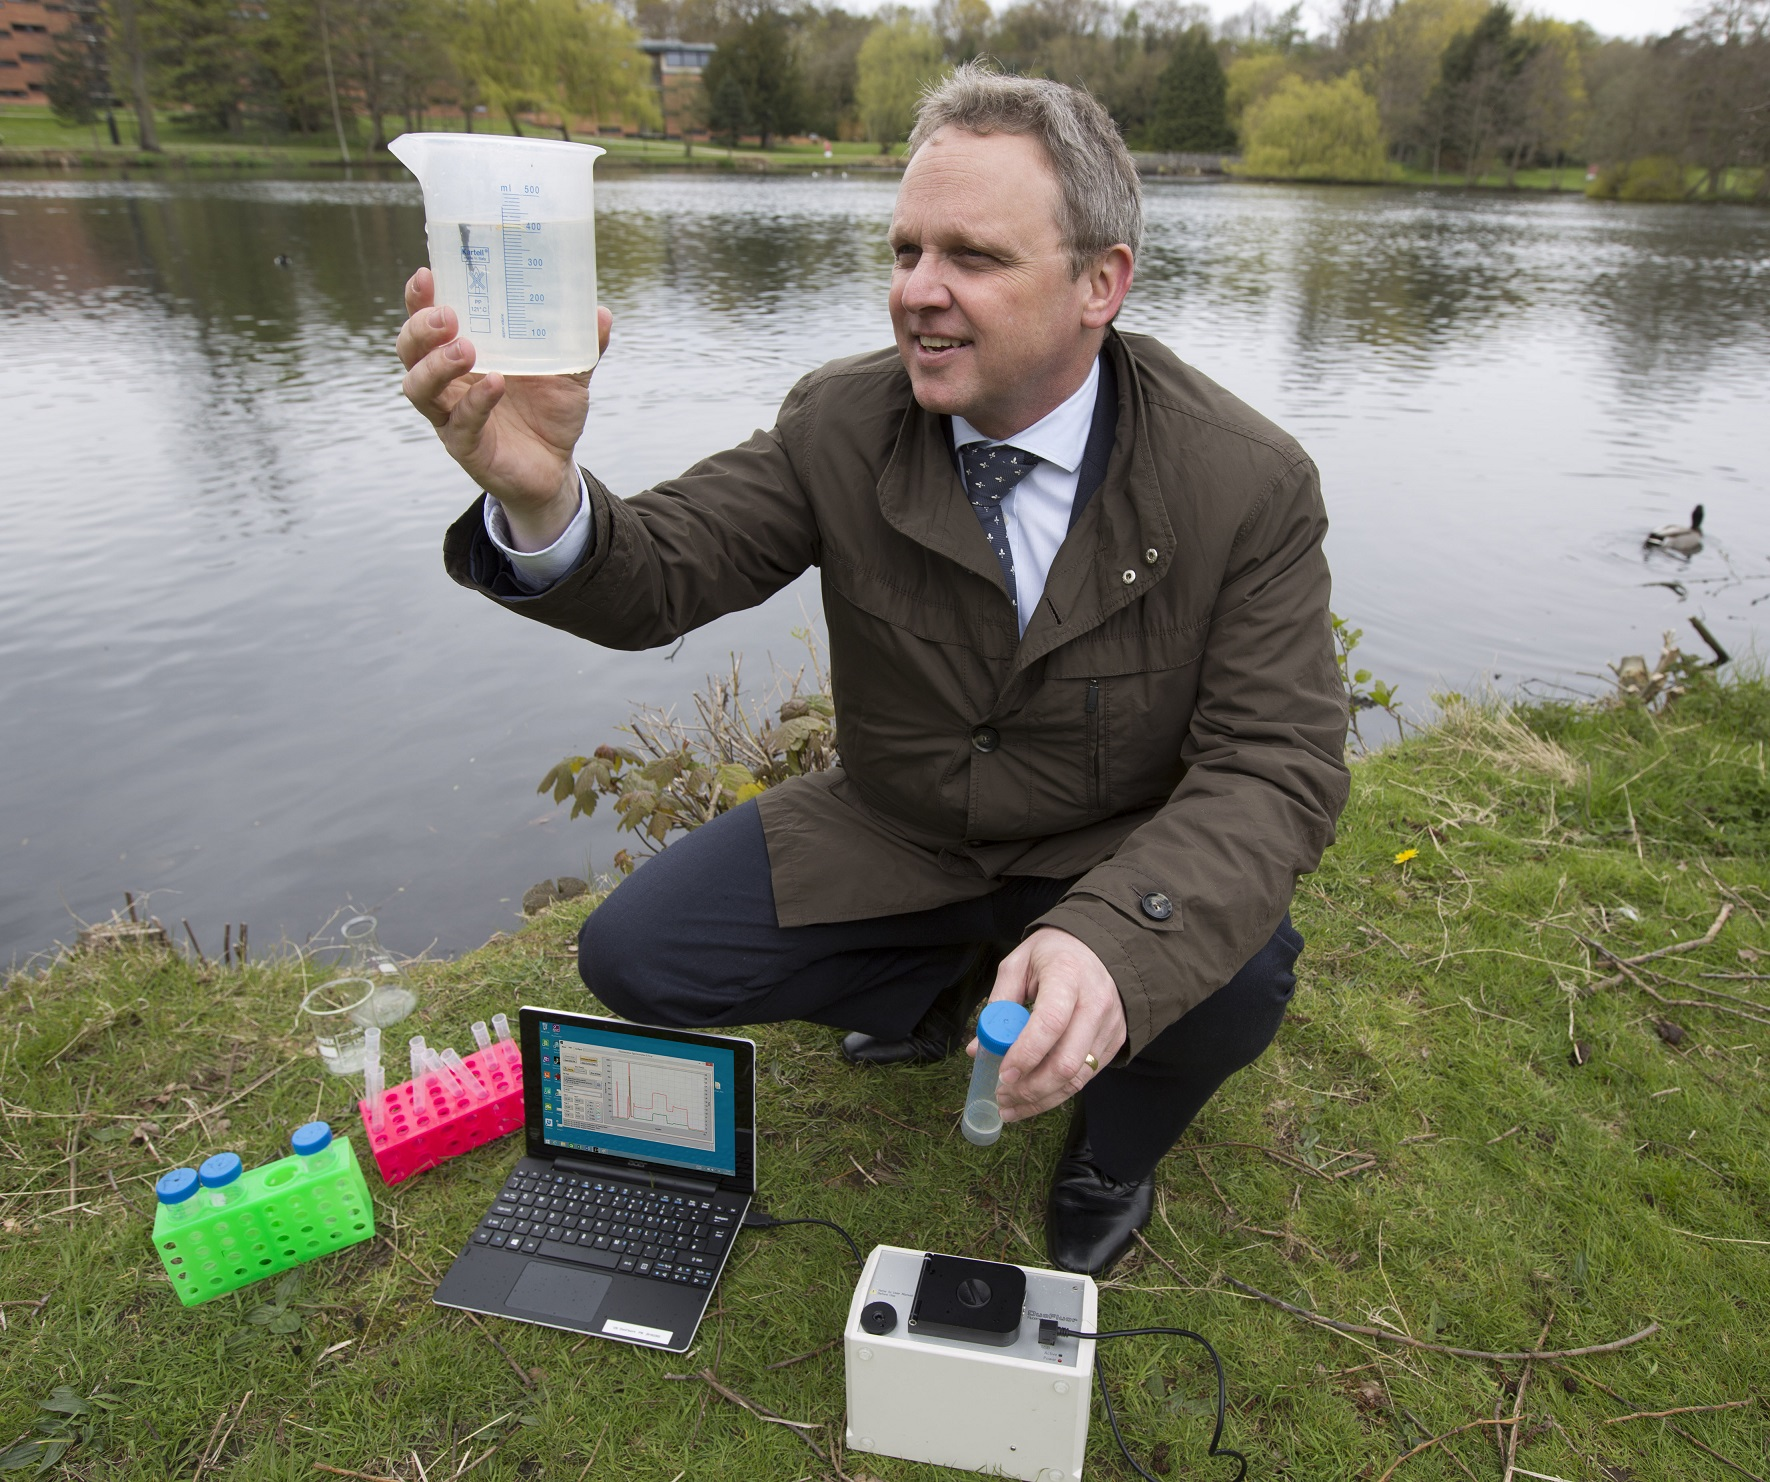 Birmingham water experts develop water testing device to save lives